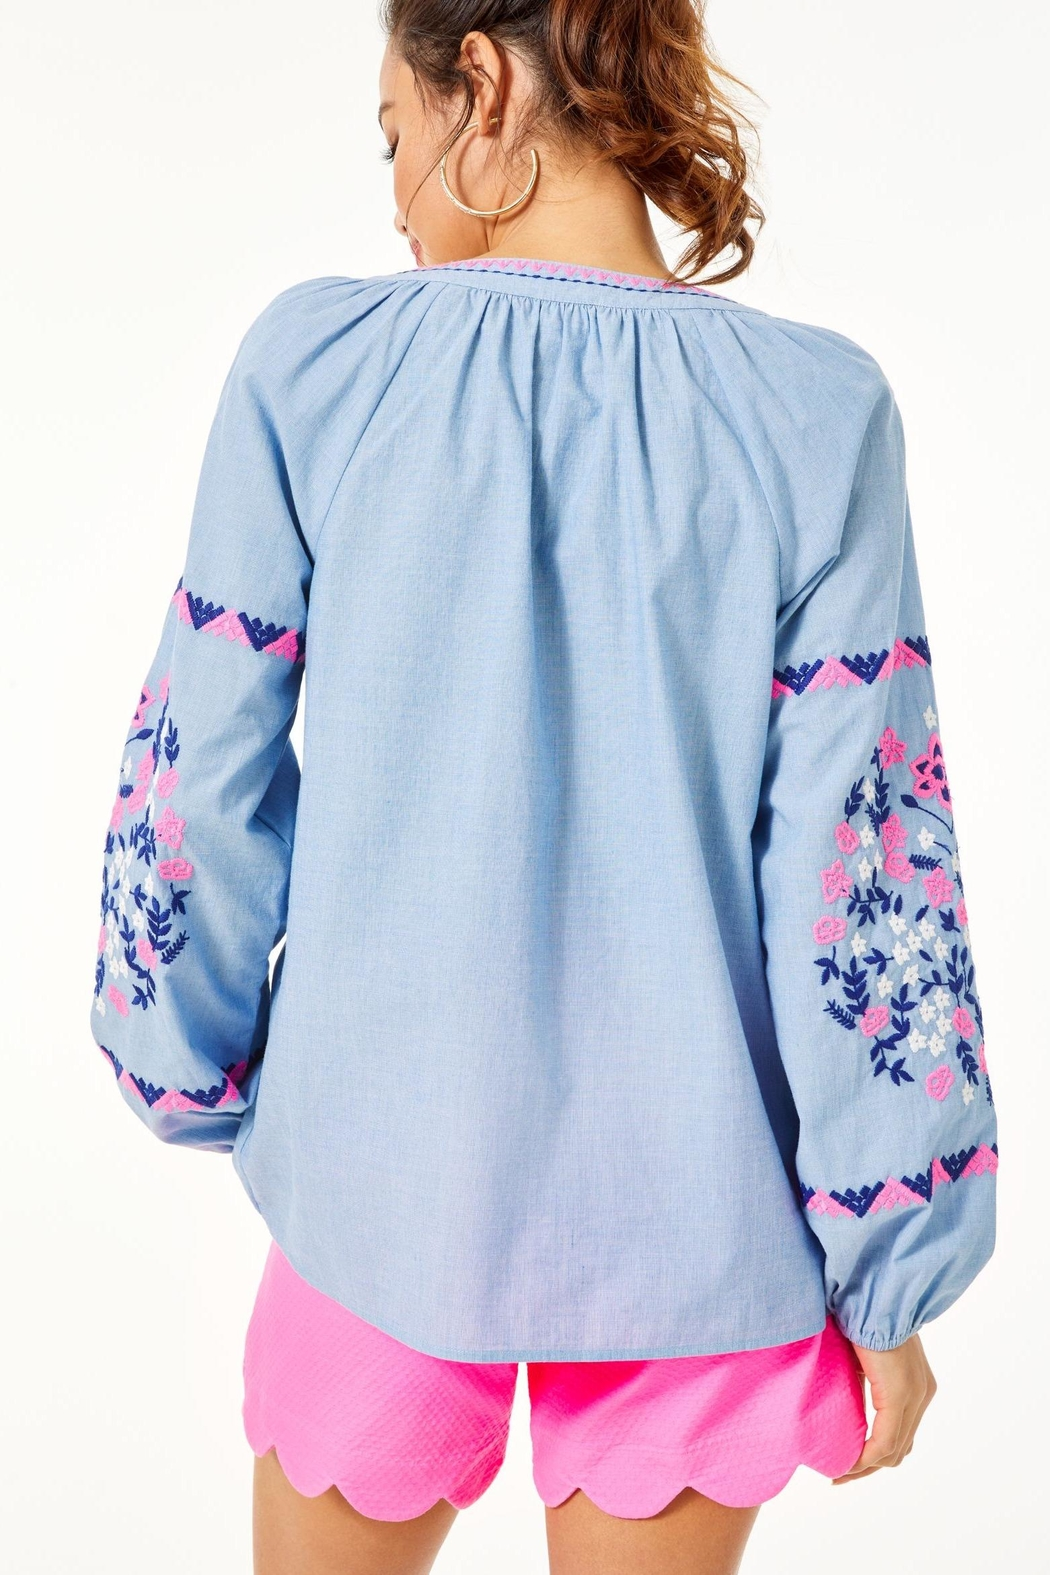 Lilly Pulitzer Keela Embroidered Top - Front Full Image